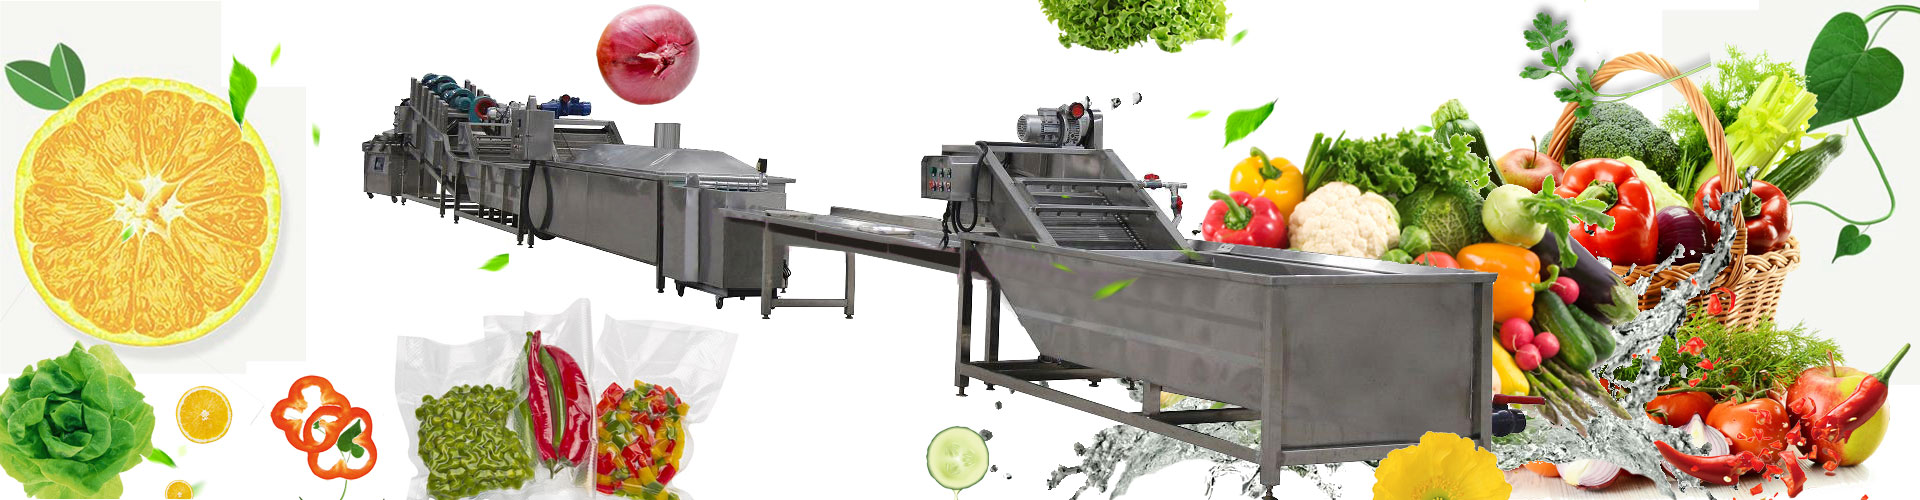 vegetable cleaning processing line